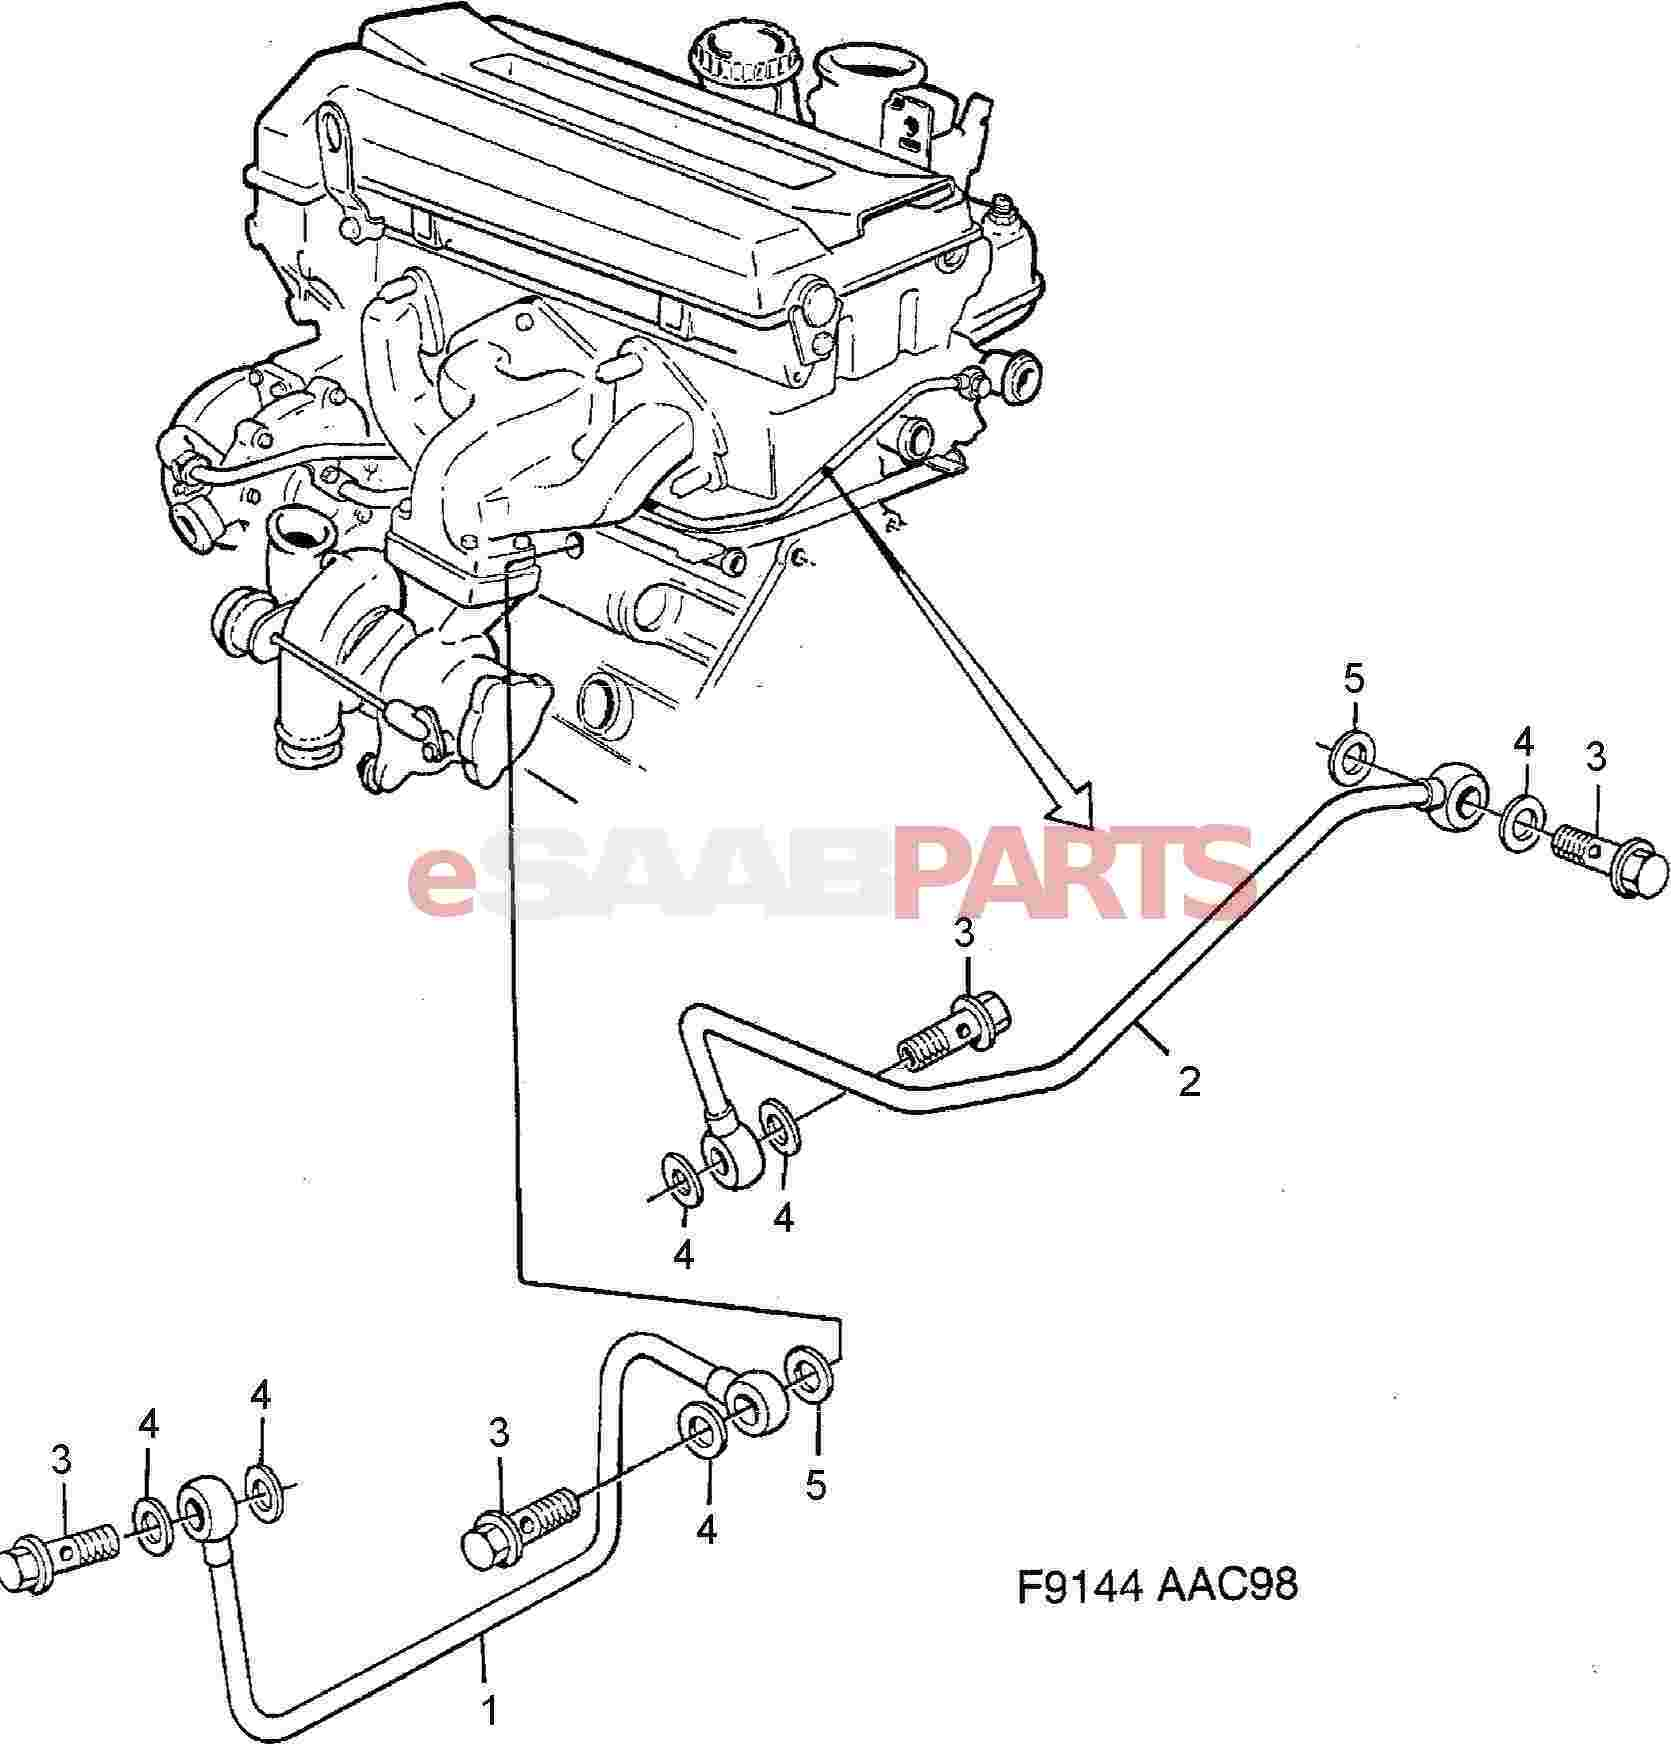 1997 saab 900 wiring diagram diagrams